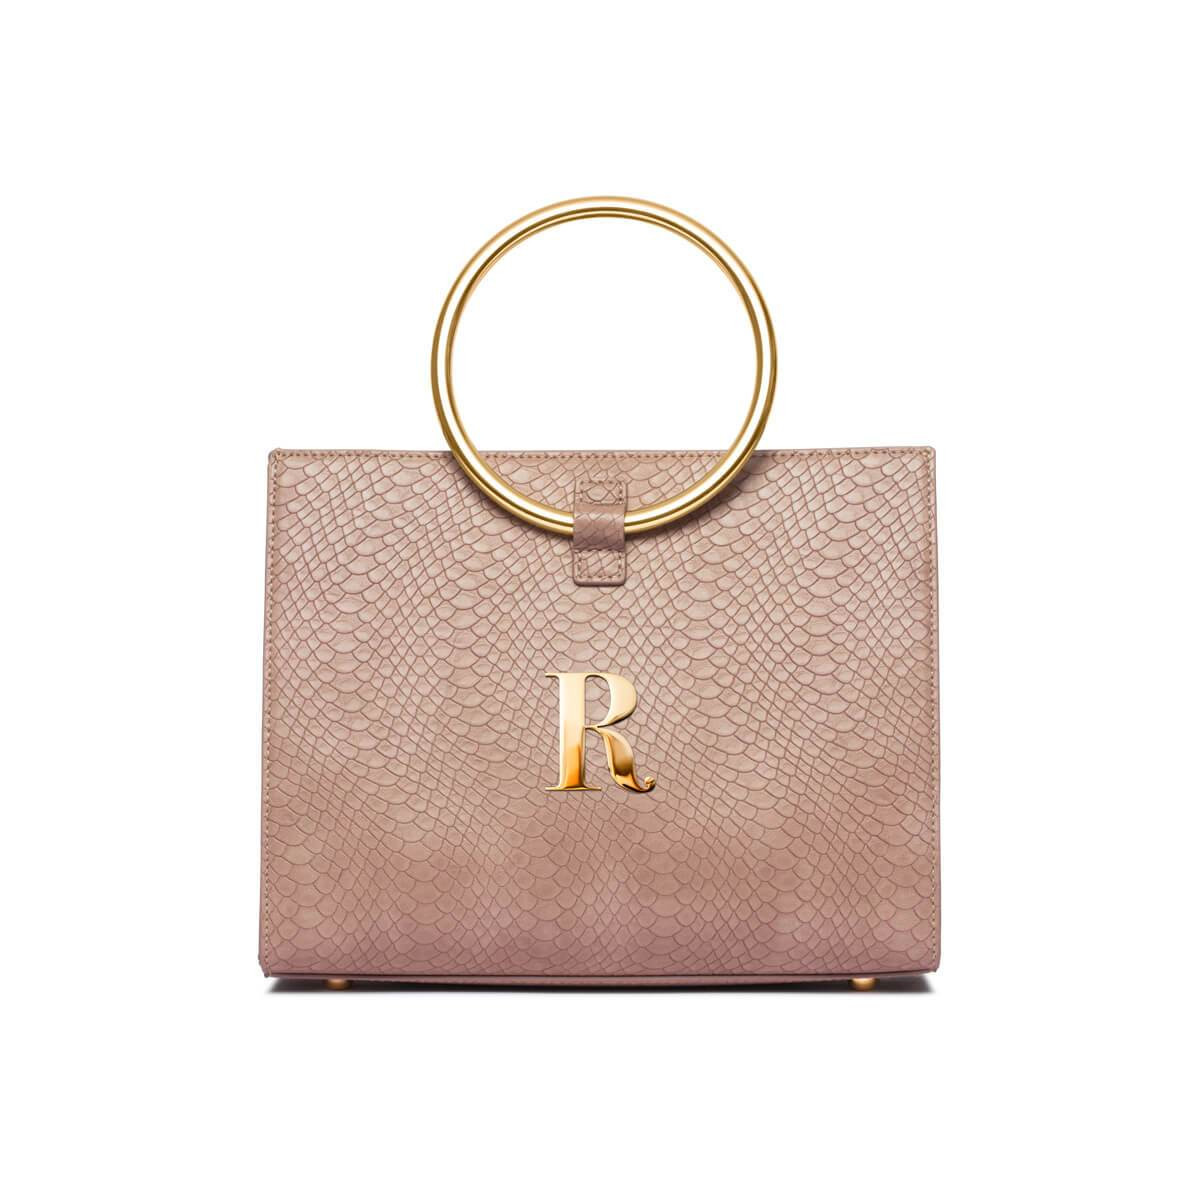 Dusky Rose Moda Handbag Yellow Gold